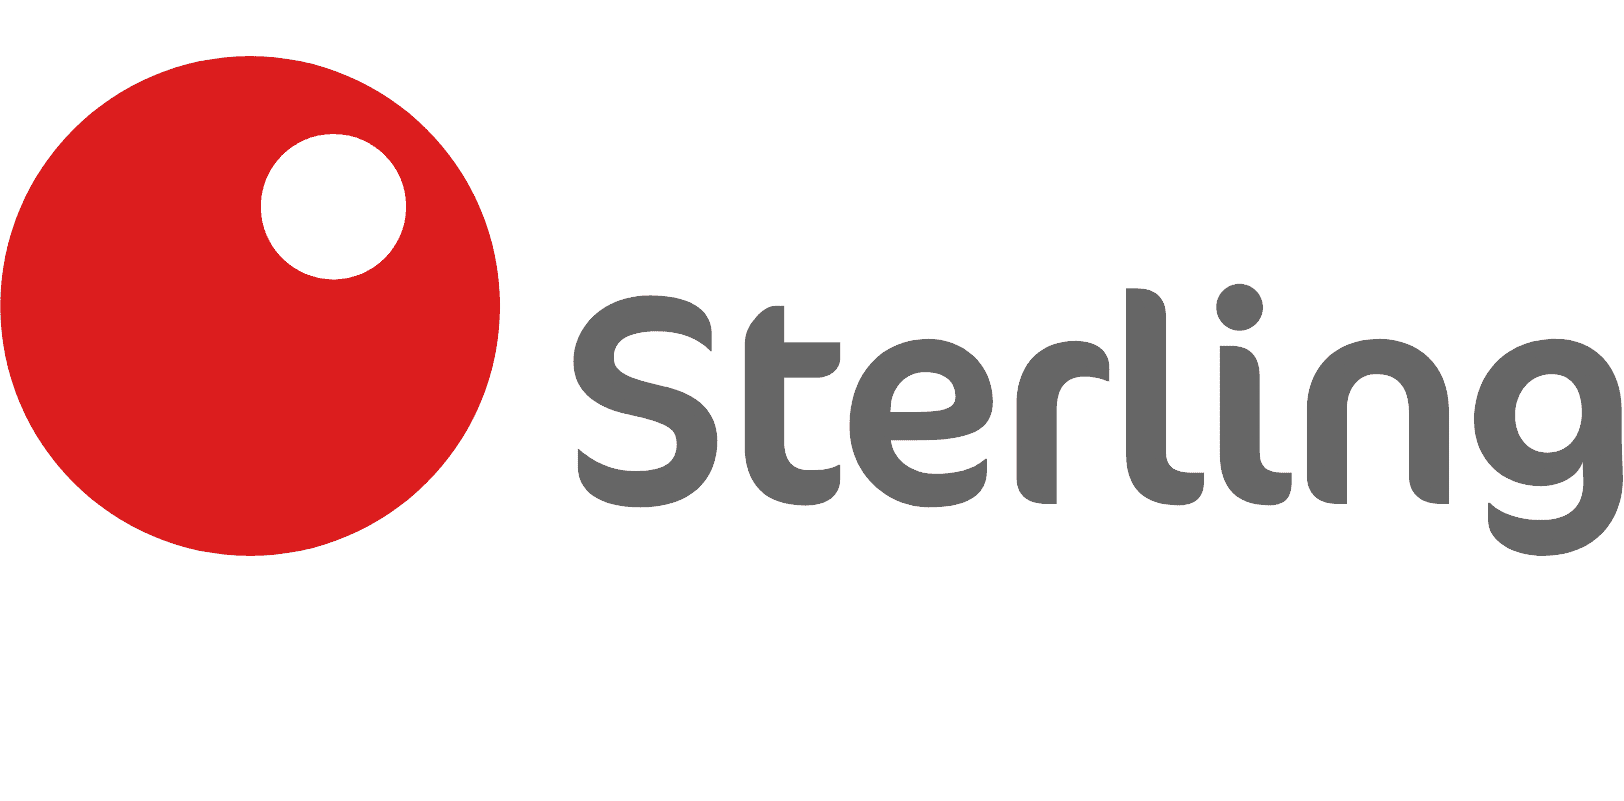 Sterling Bank; We Hail Thee!